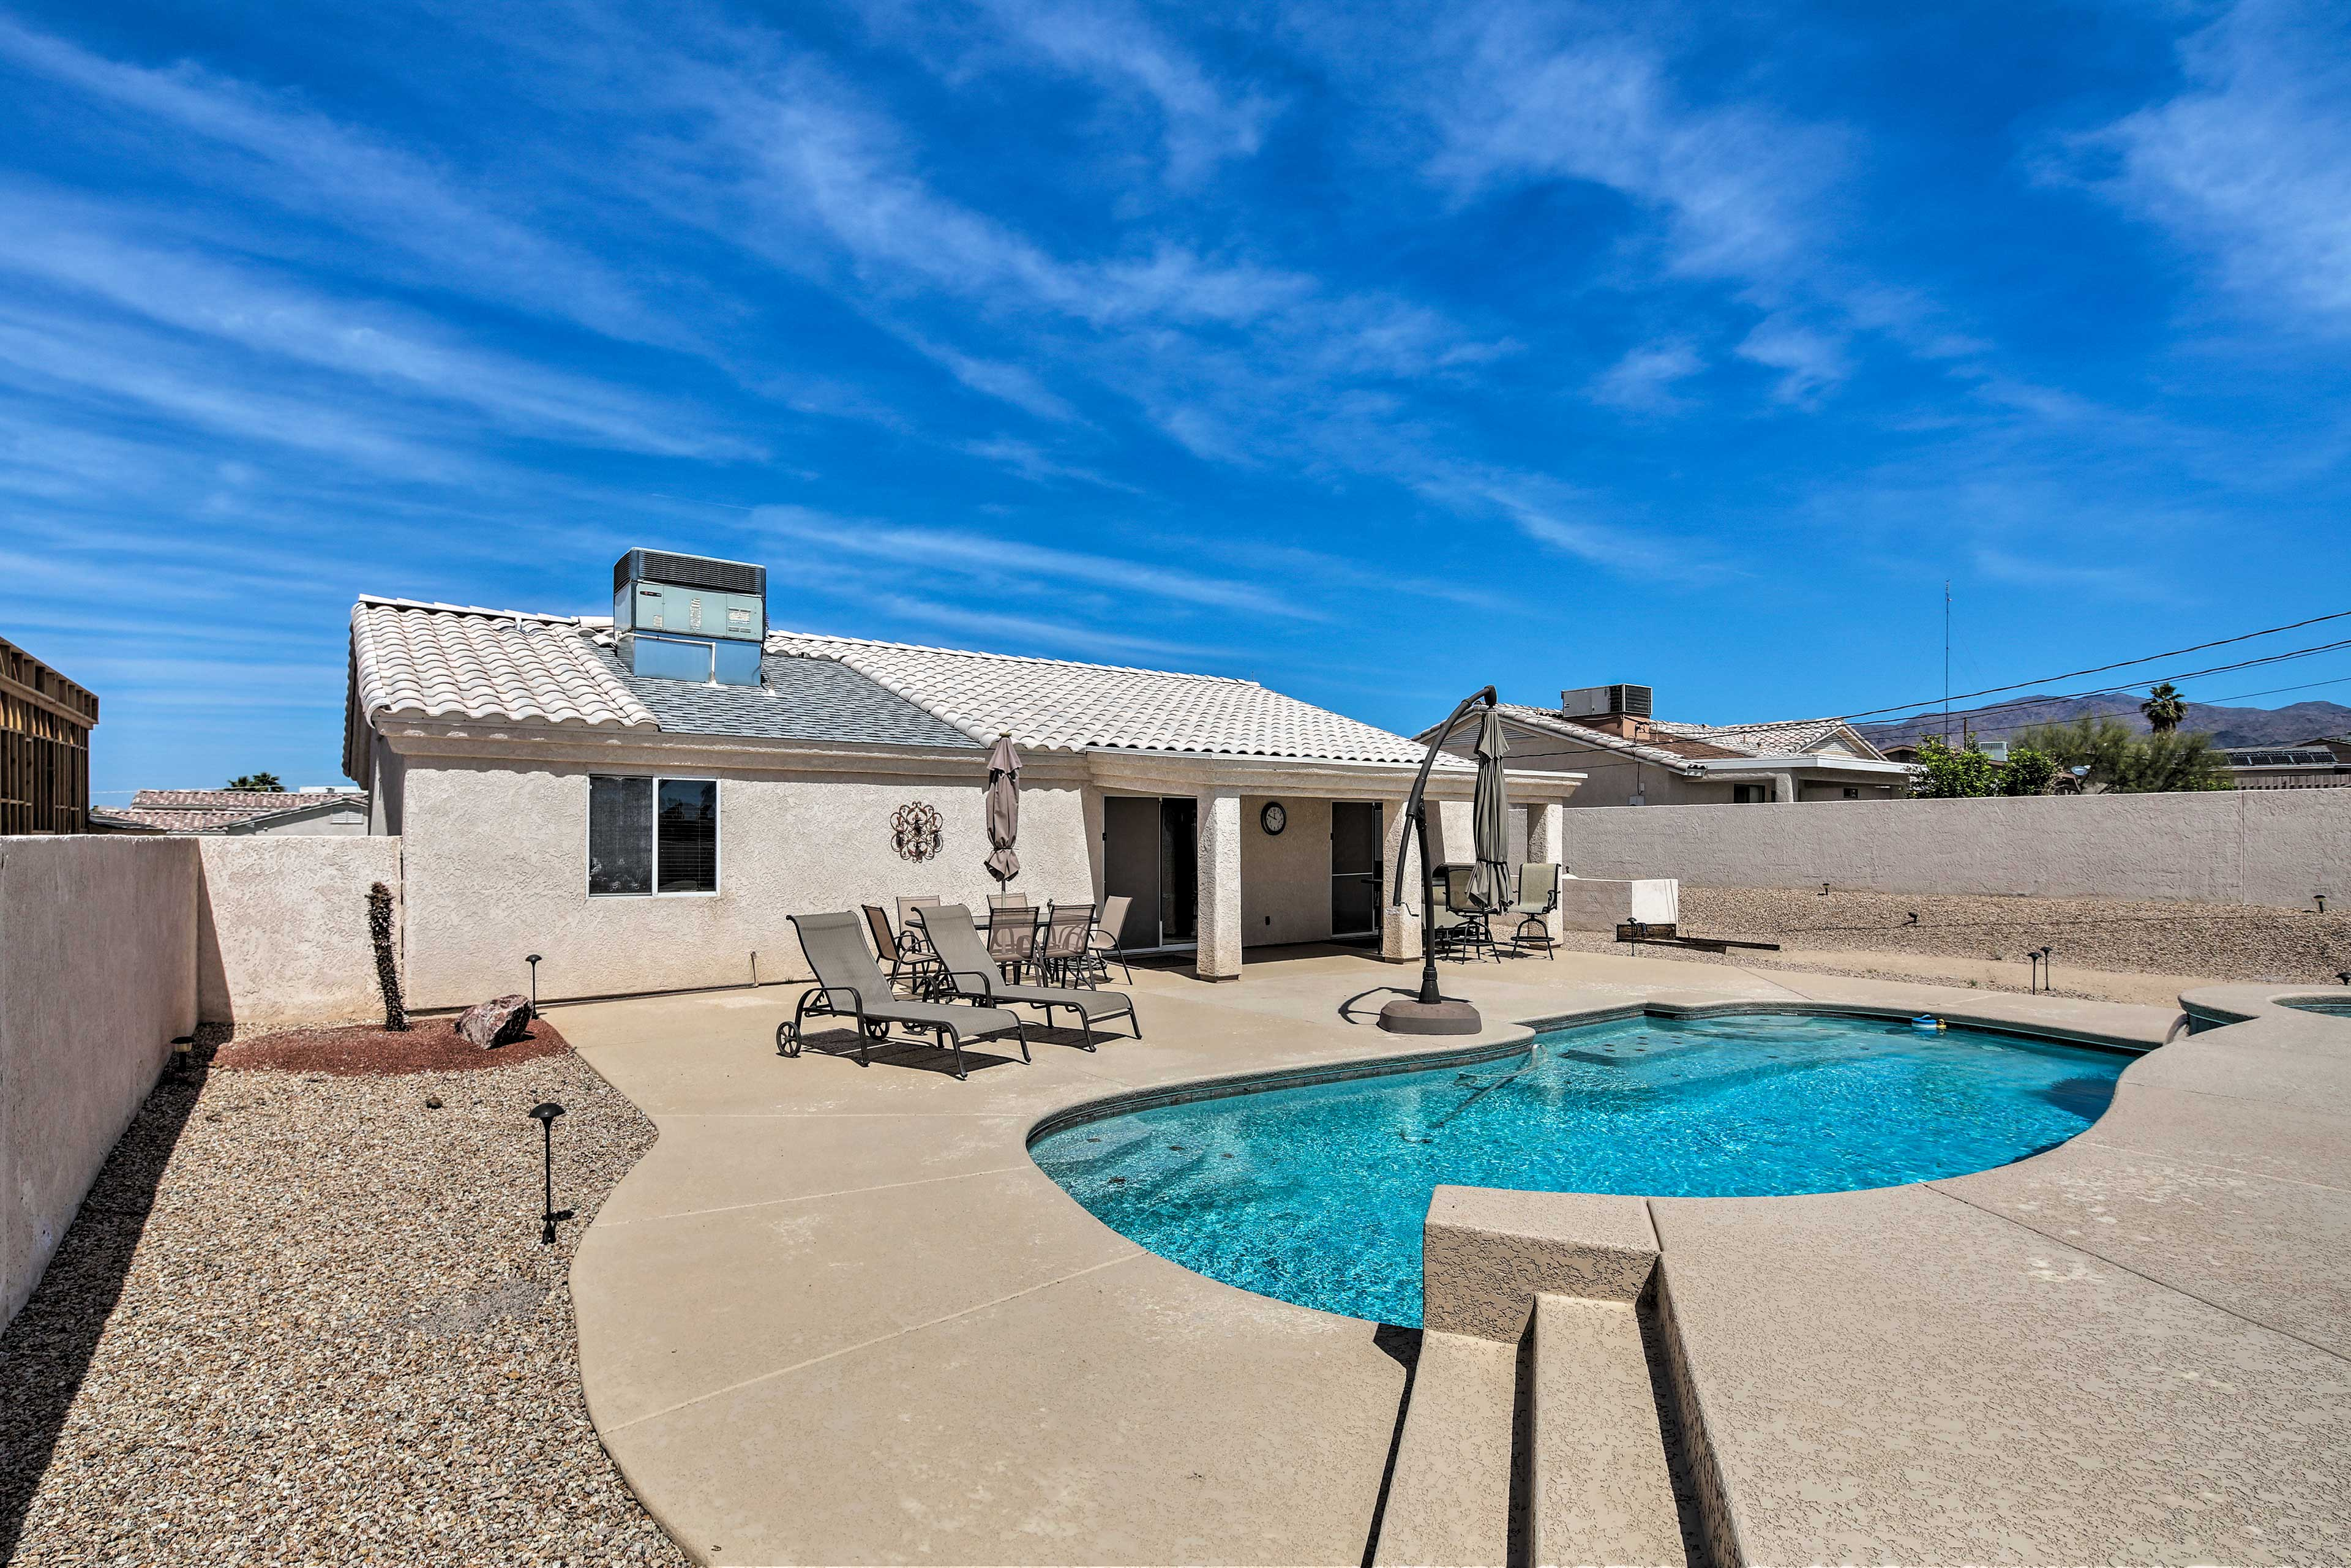 The pool and hot tub include a waterfall feature and stunning mountain views.